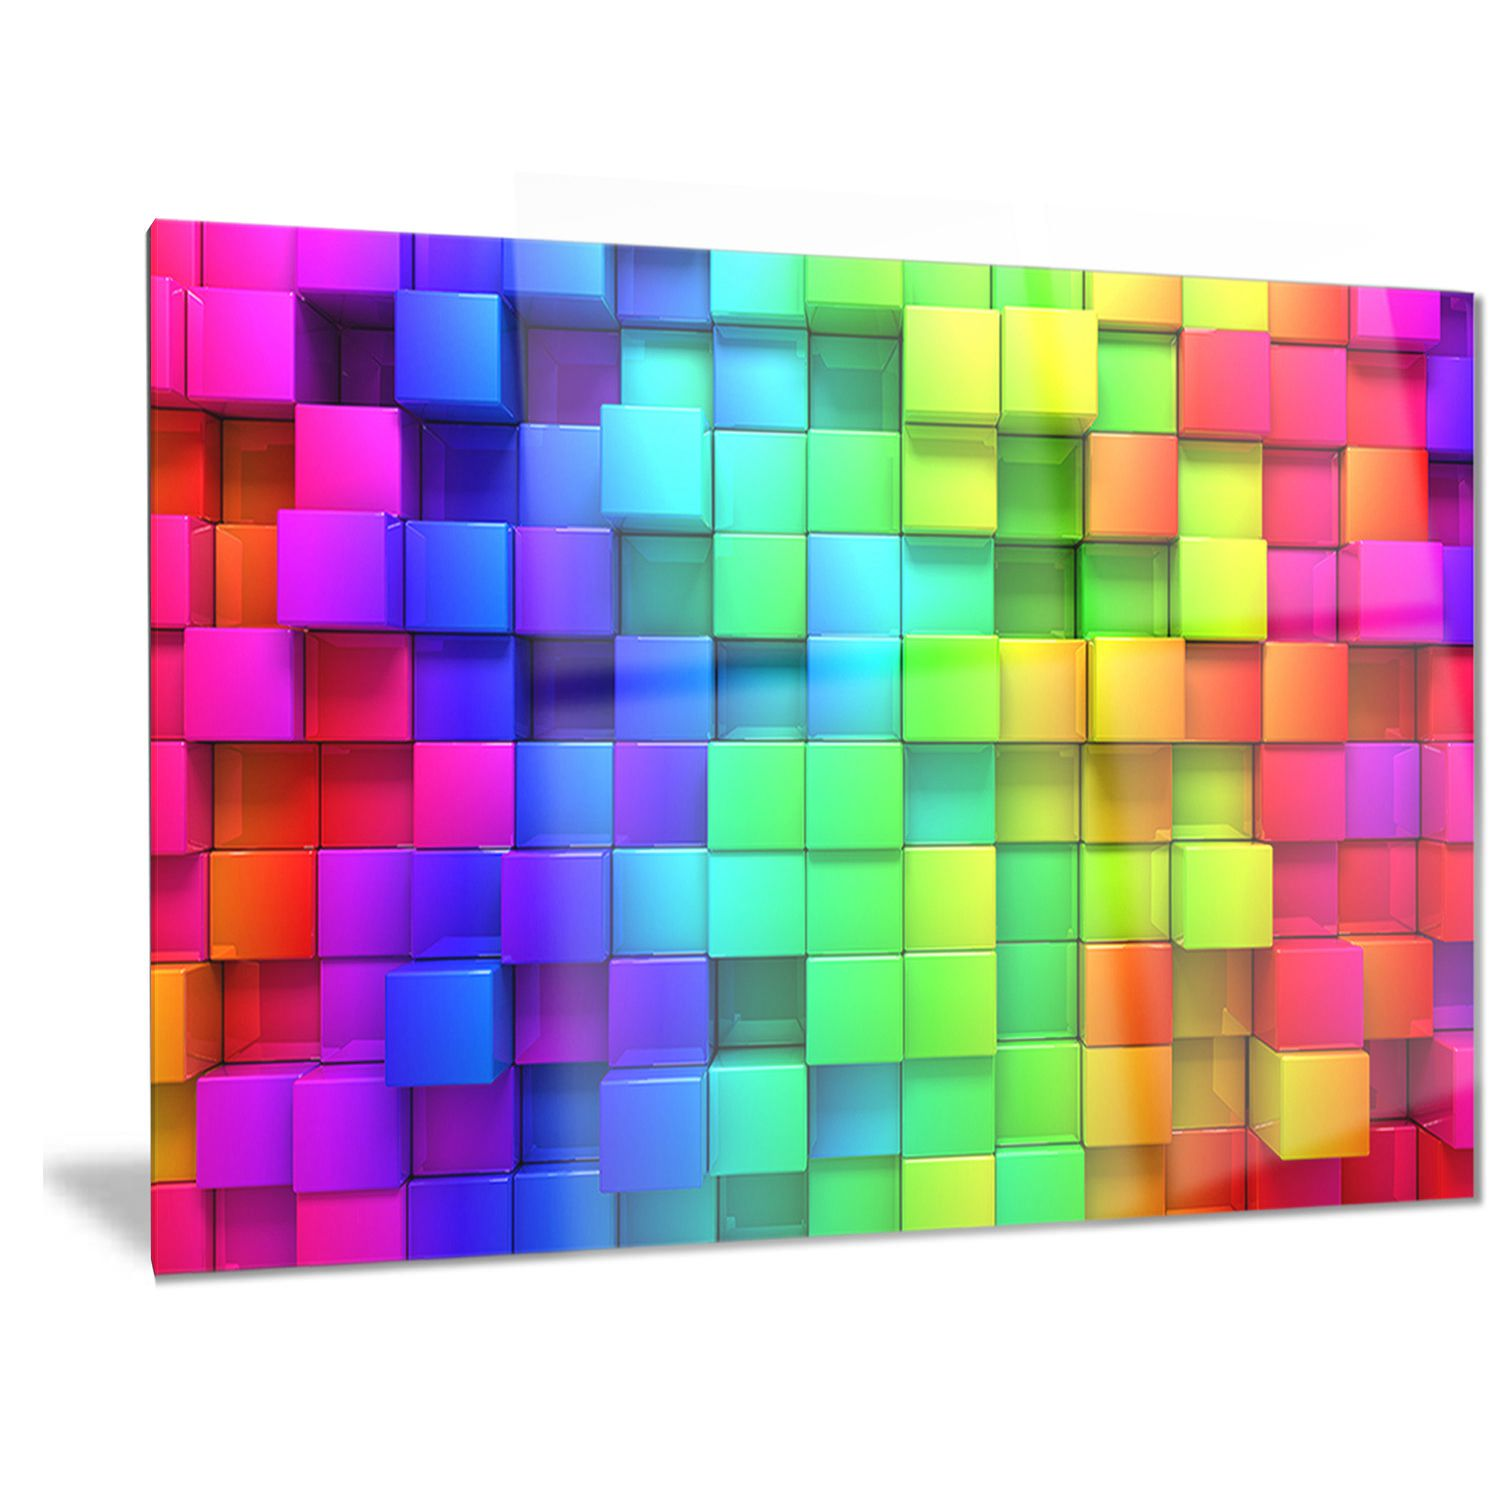 COLOURFUL RAINBOW BOXES ABSTRACT CANVAS WALL ART PRINT PICTURE READY TO HANG